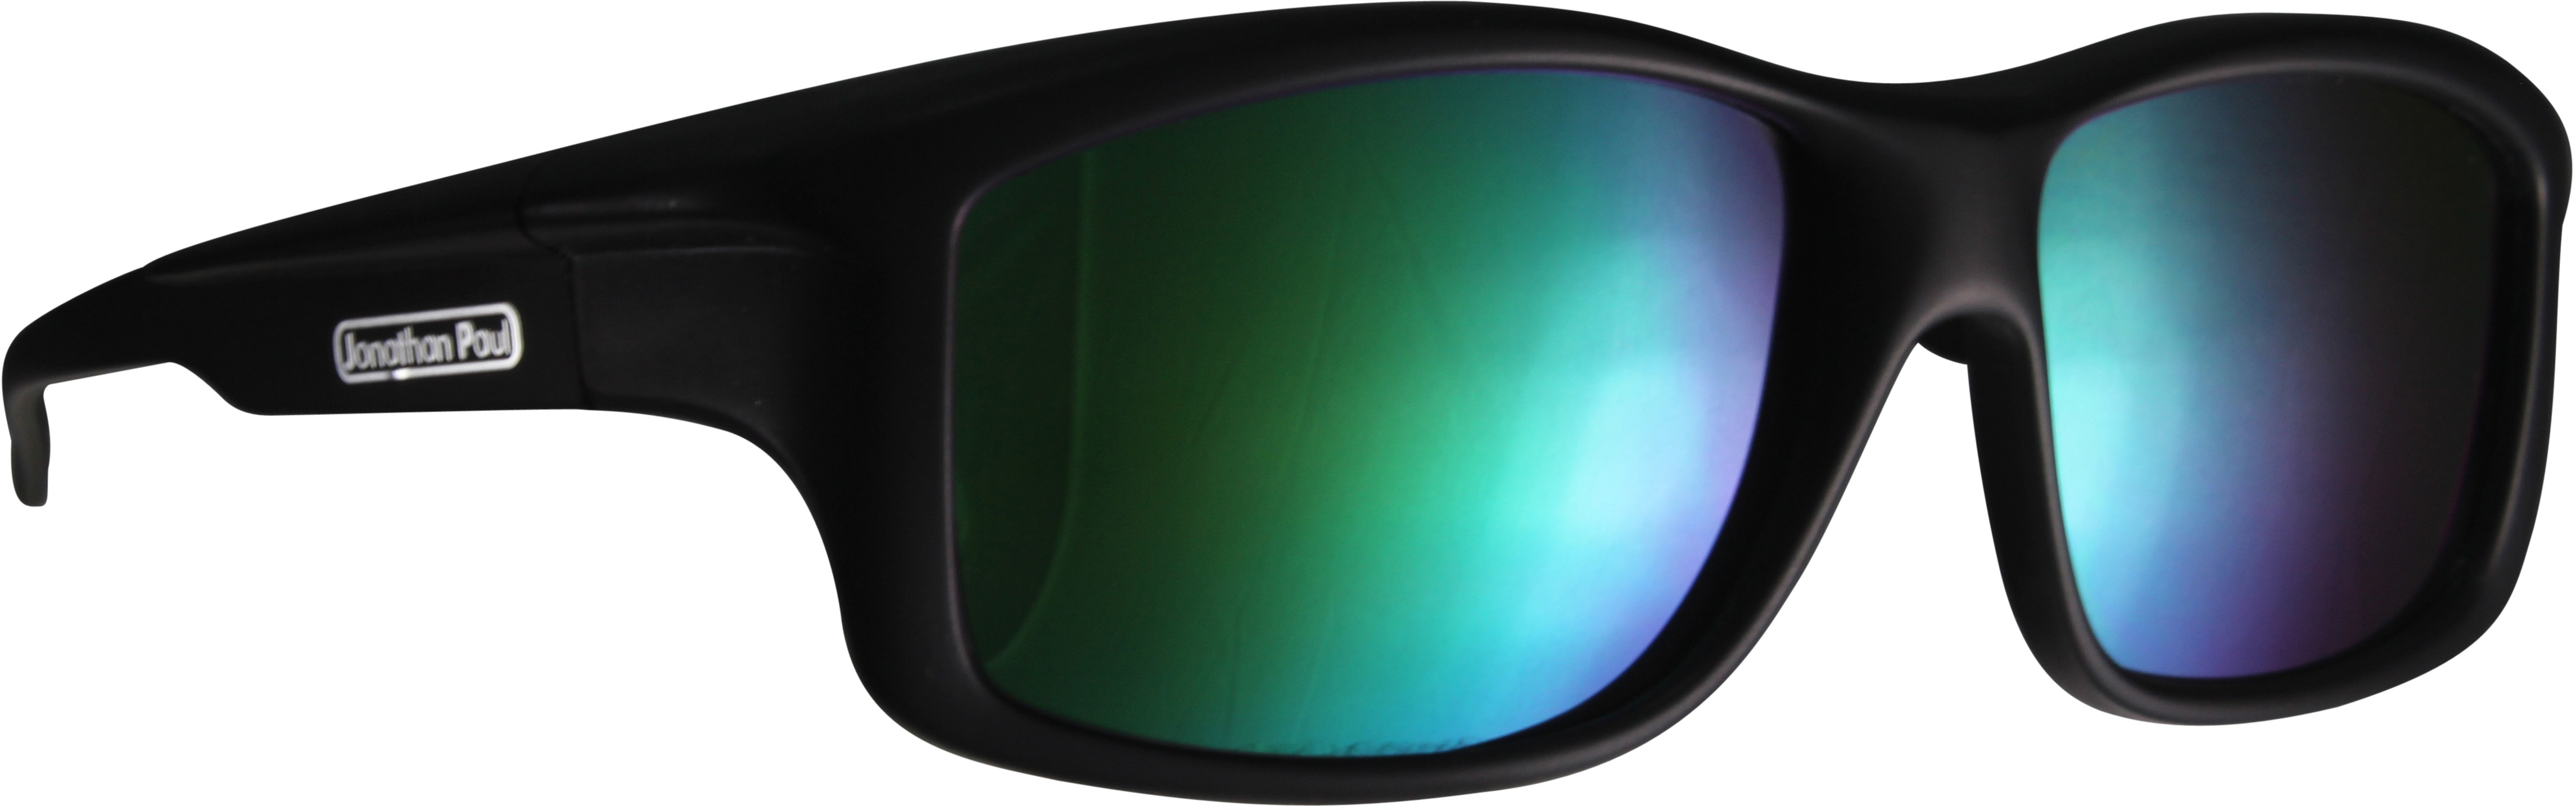 147mm x Fitovers Eyewear Sunglasses Fits Over Frames X Large Aviator